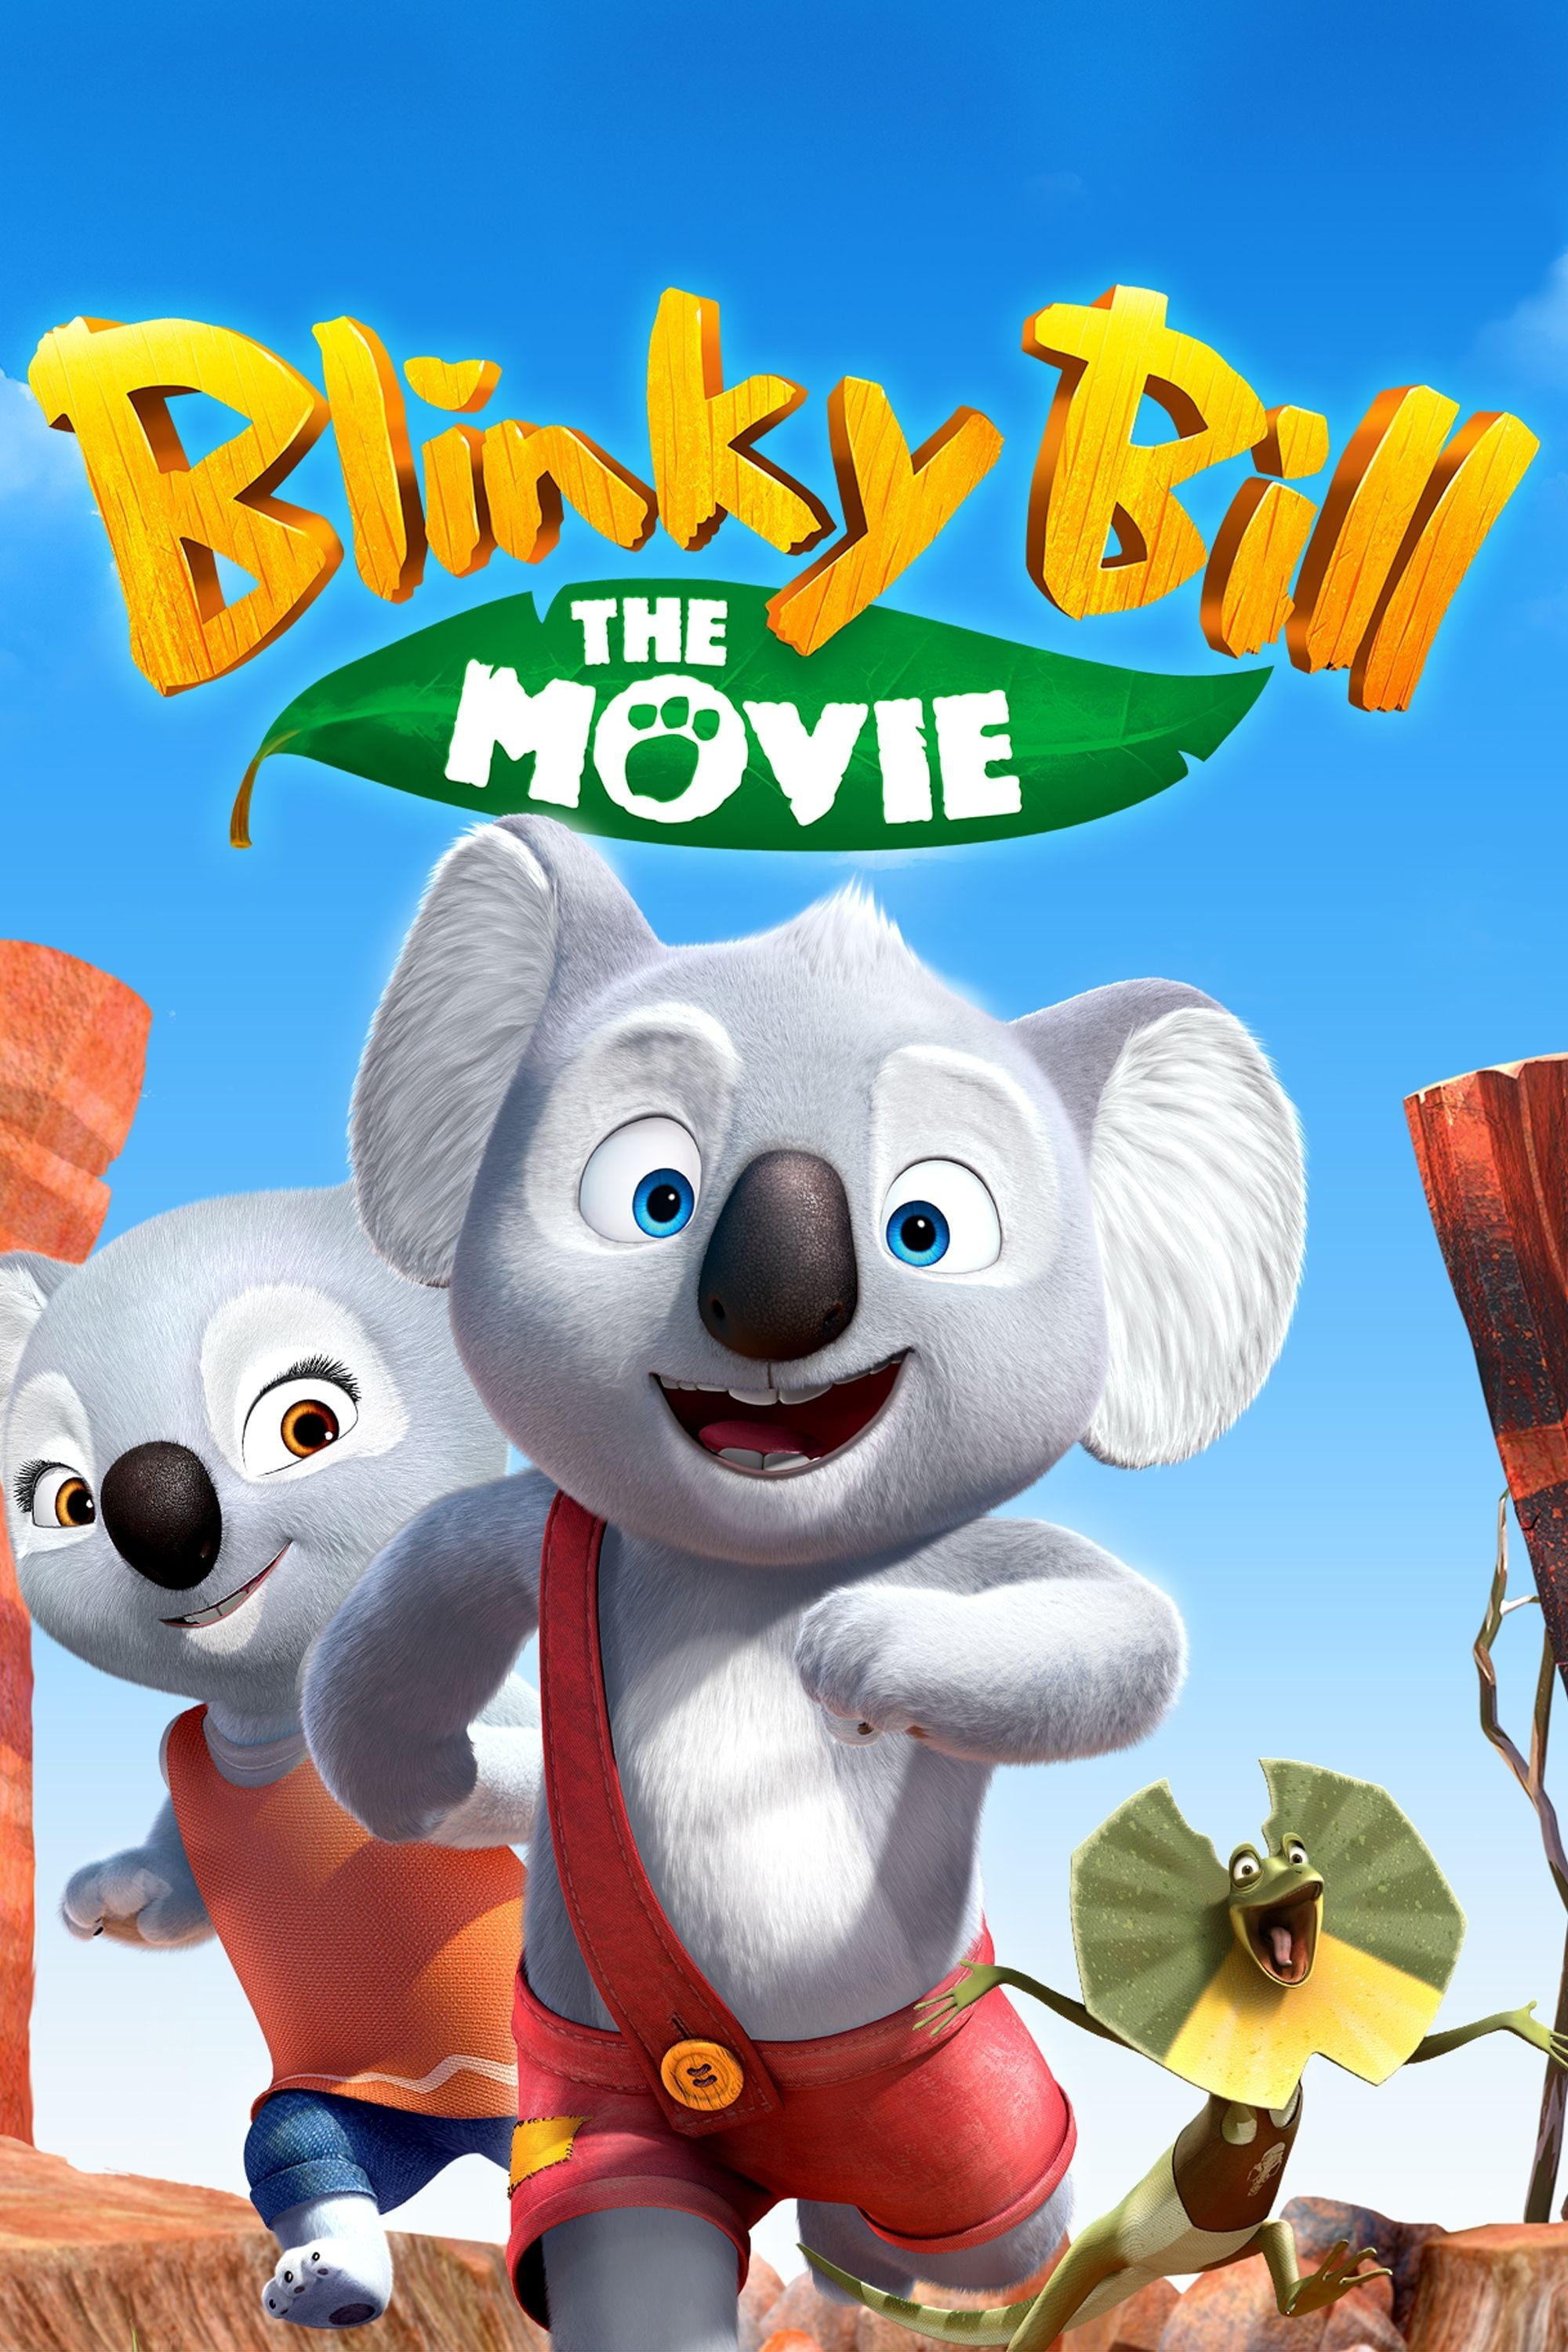 Blinky-Bill-Le-Film-Blinky-Bill-The-Movie-2020-8709